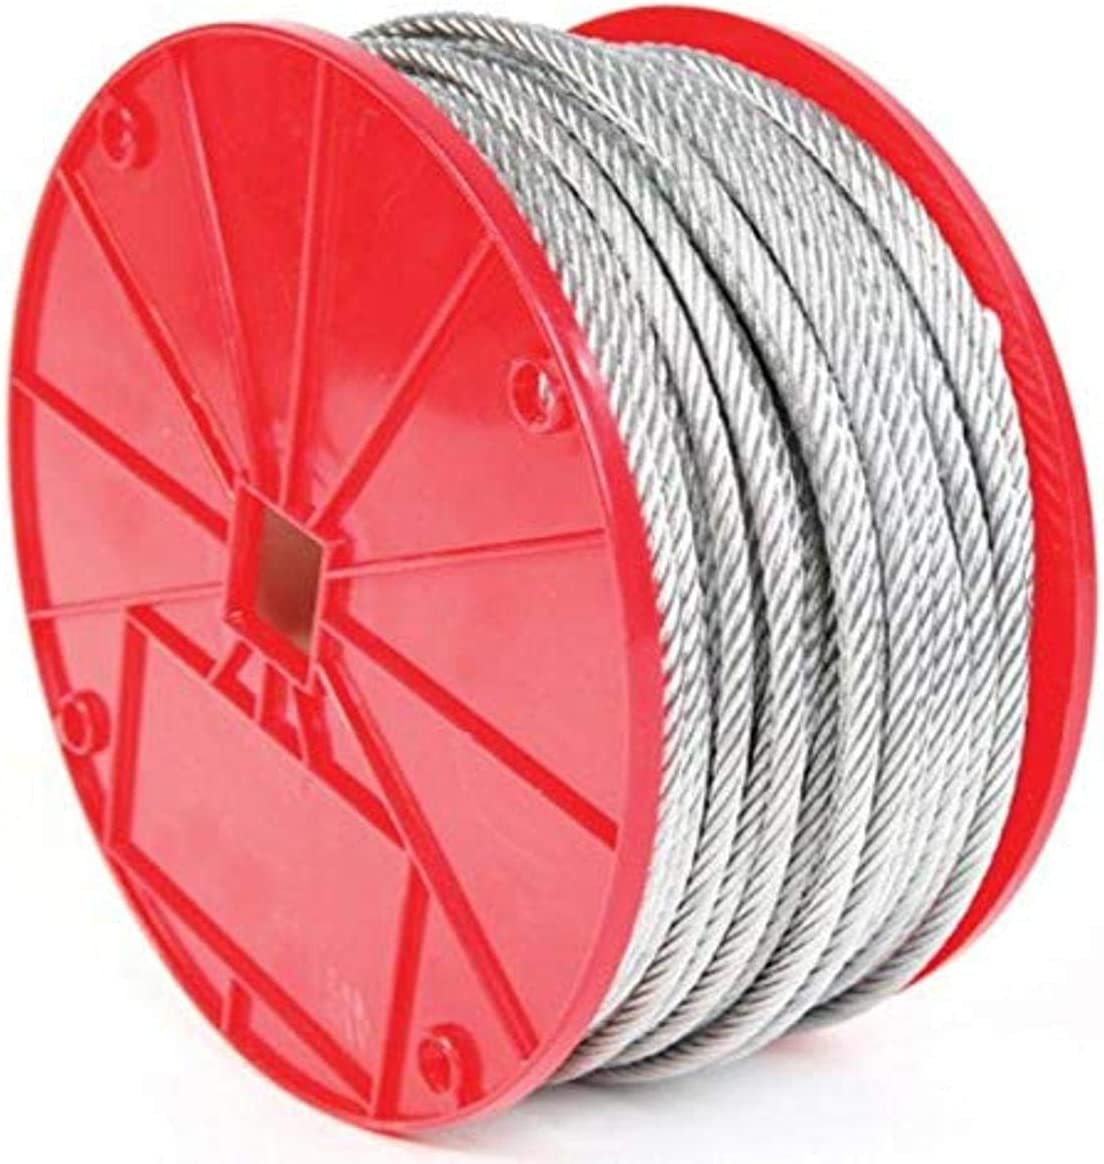 Koch 003162 OFFicial Cable 7 by 19 Construction 250 3 Trade Discount is also underway Size 16